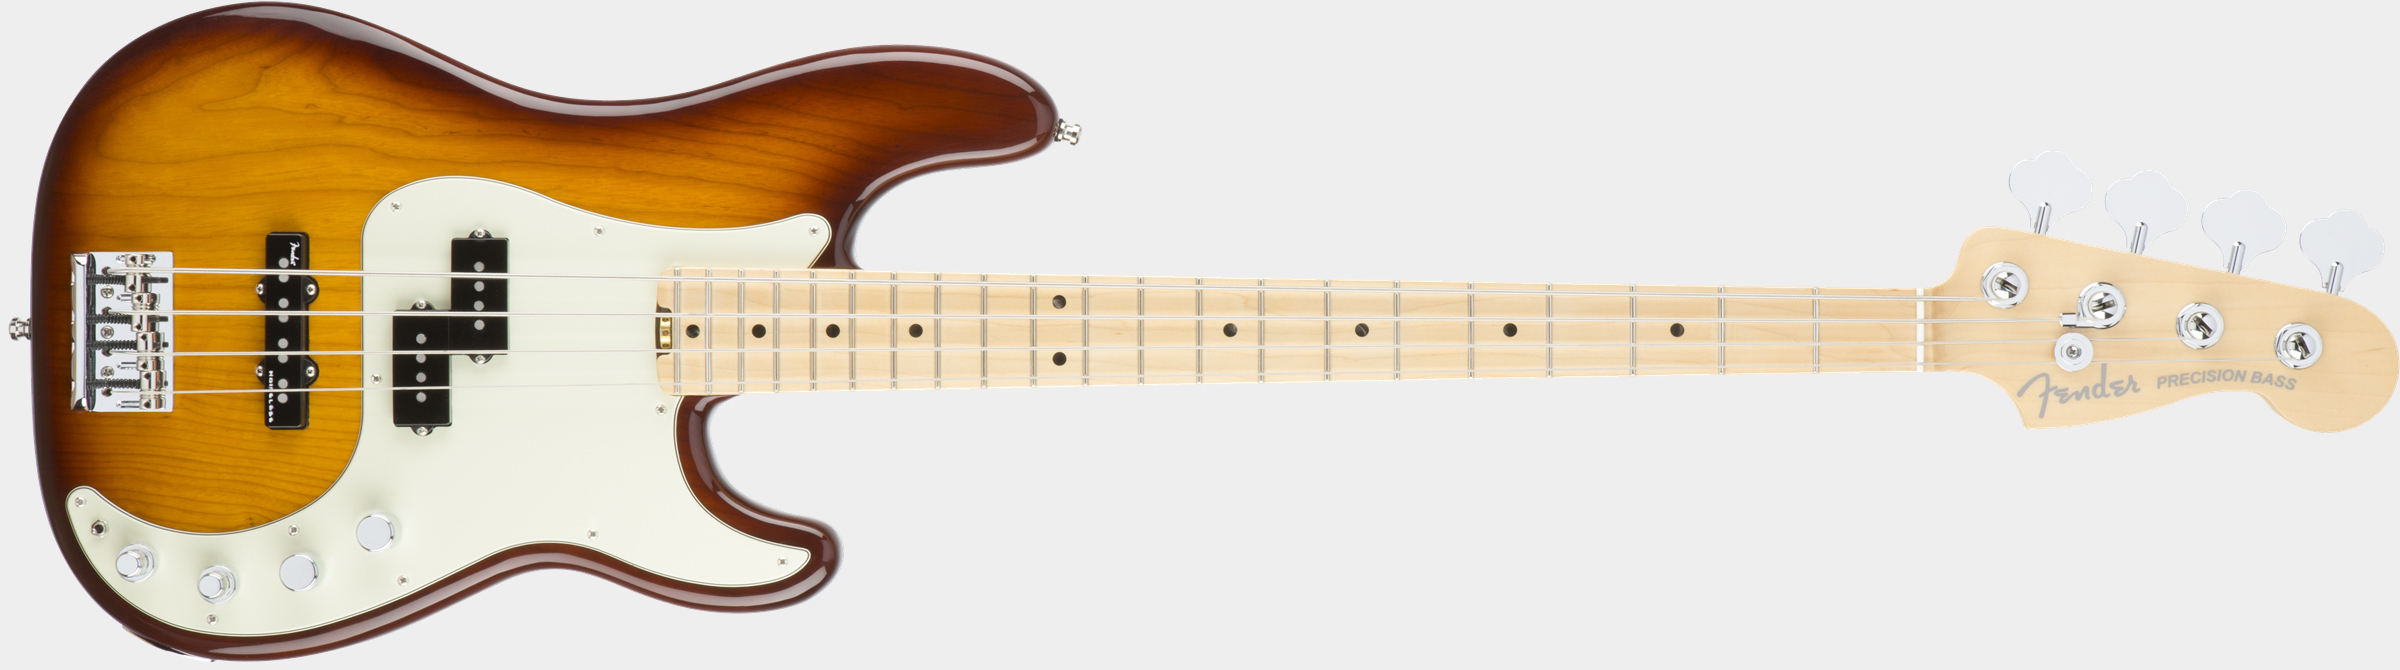 FENDER American Elite Precision Bass Tobacco Sunburst